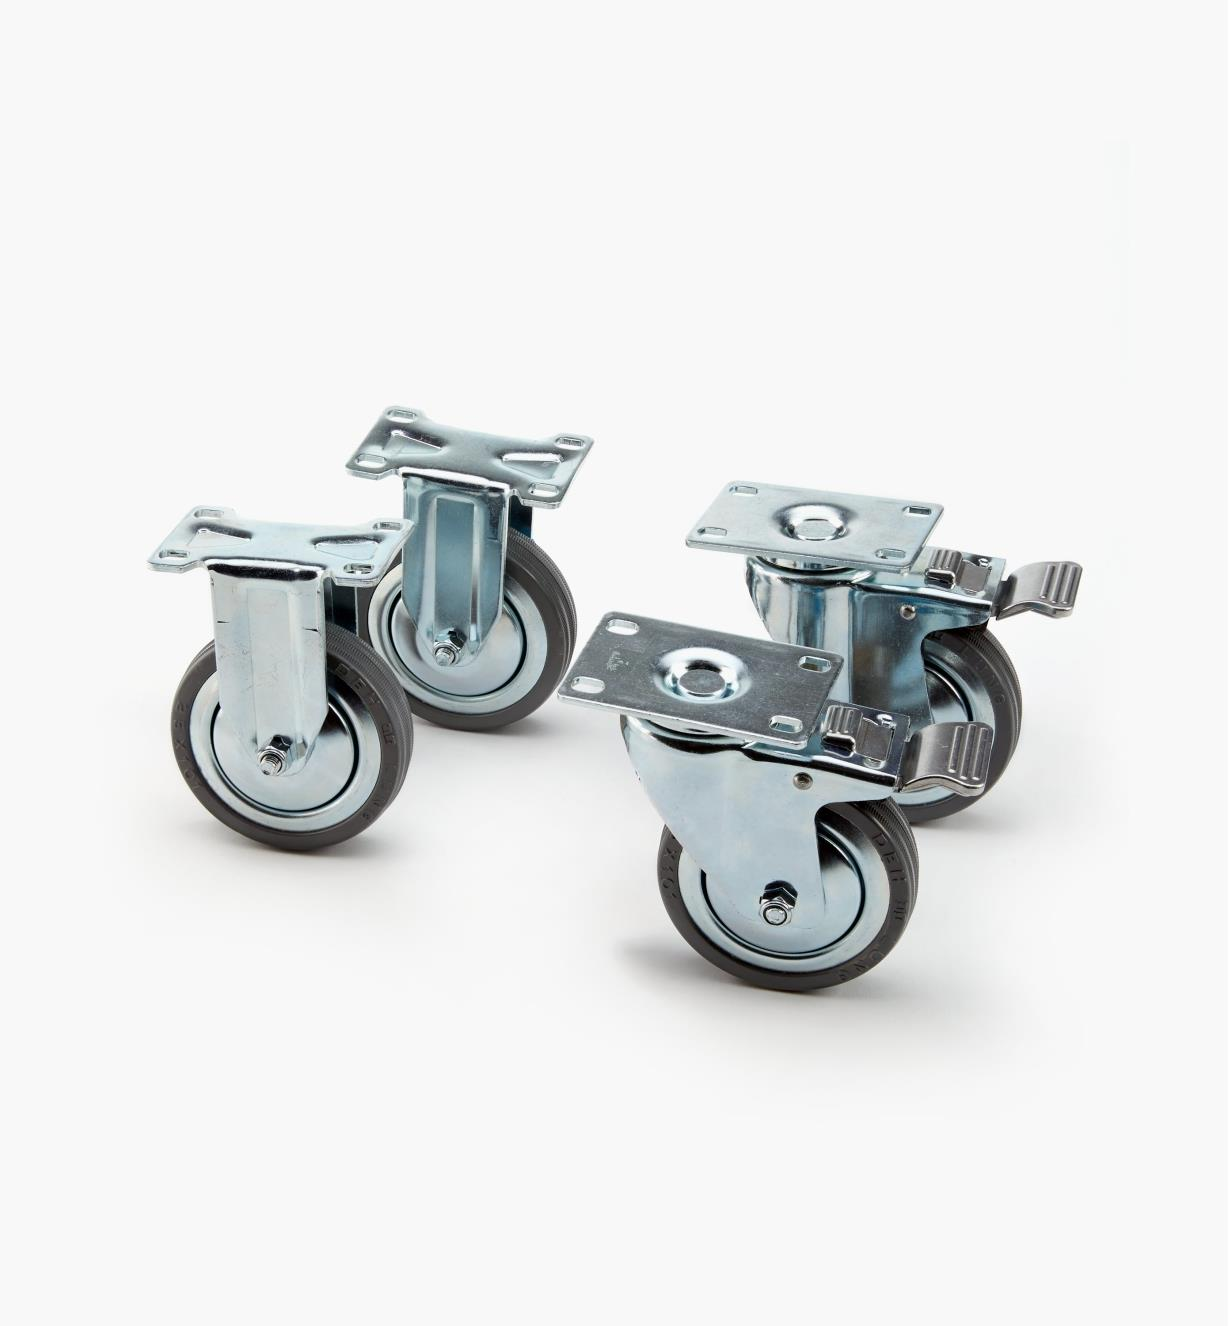 00K2010 - Set of 4 Heavy-Duty Casters (2 of ea)